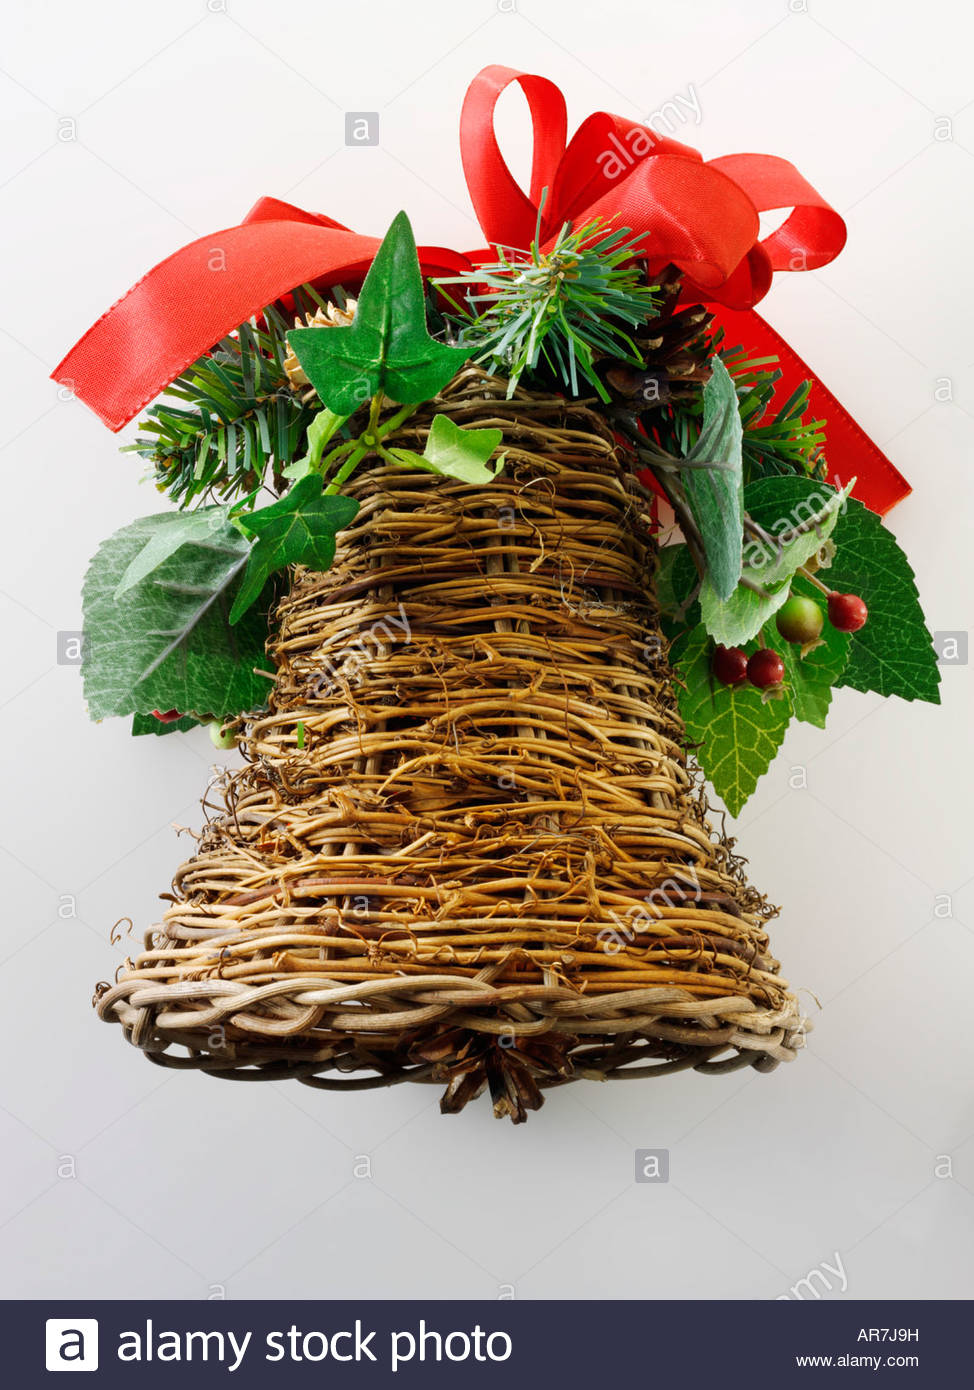 festive hand made wicker bell Christmas decoration - Stock Image